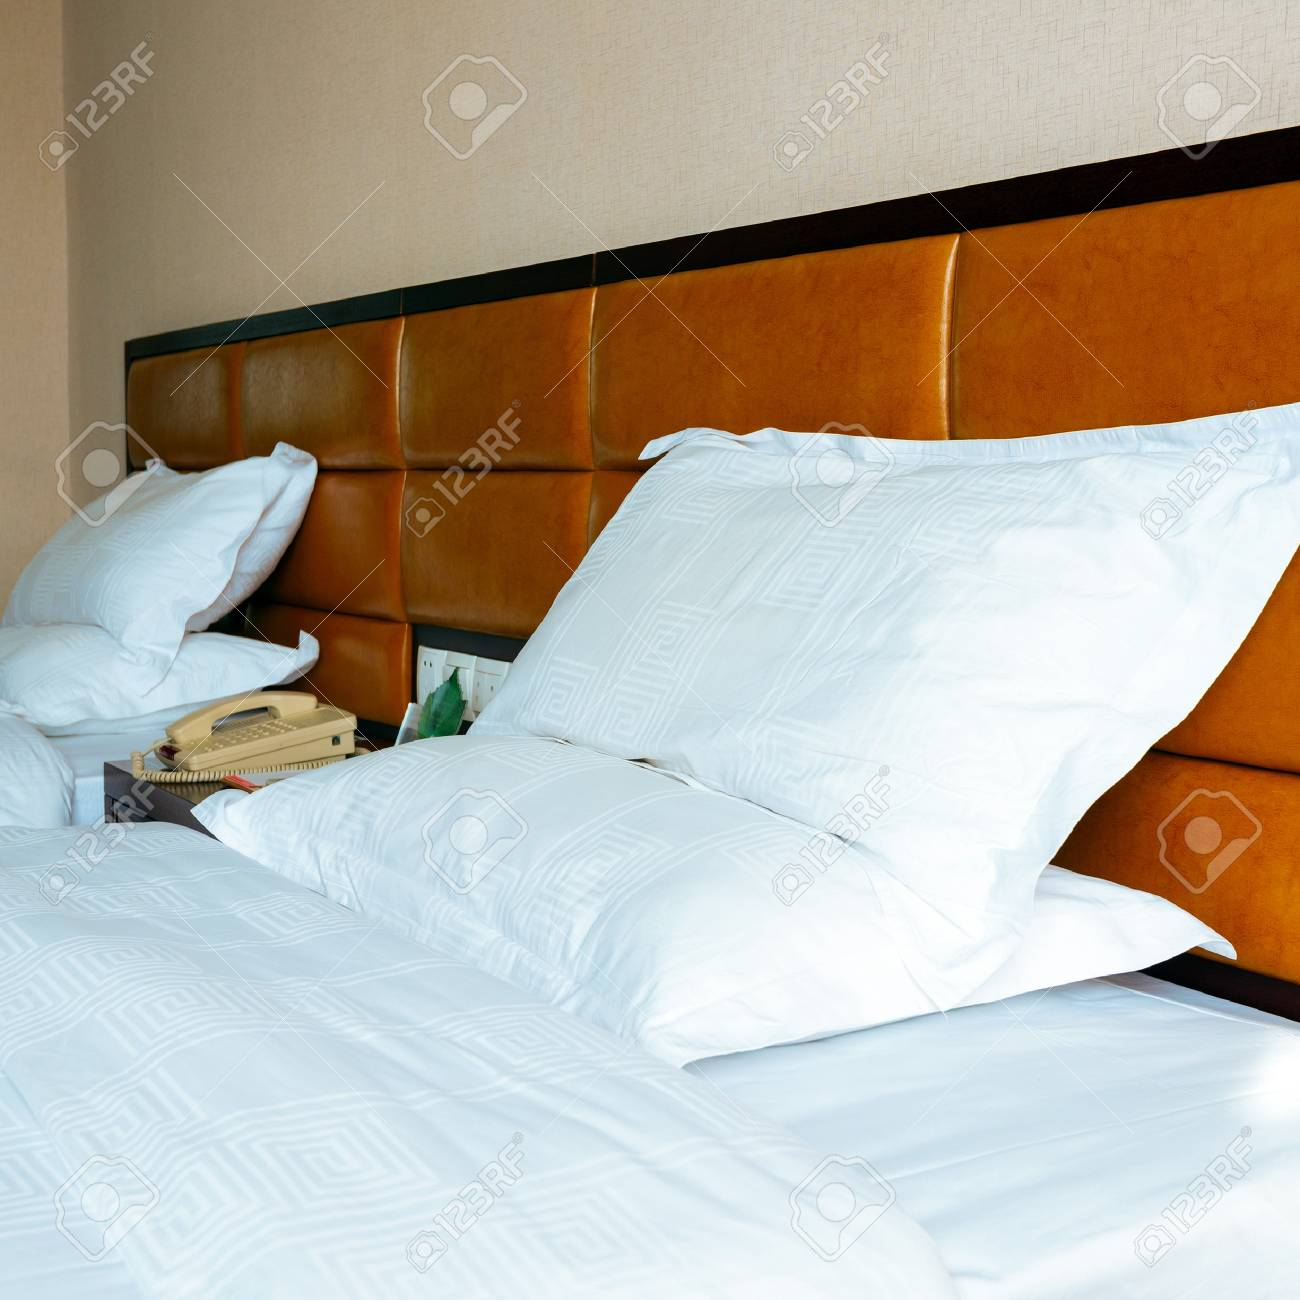 The beds, white linens and pillows Stock Photo - 21430993